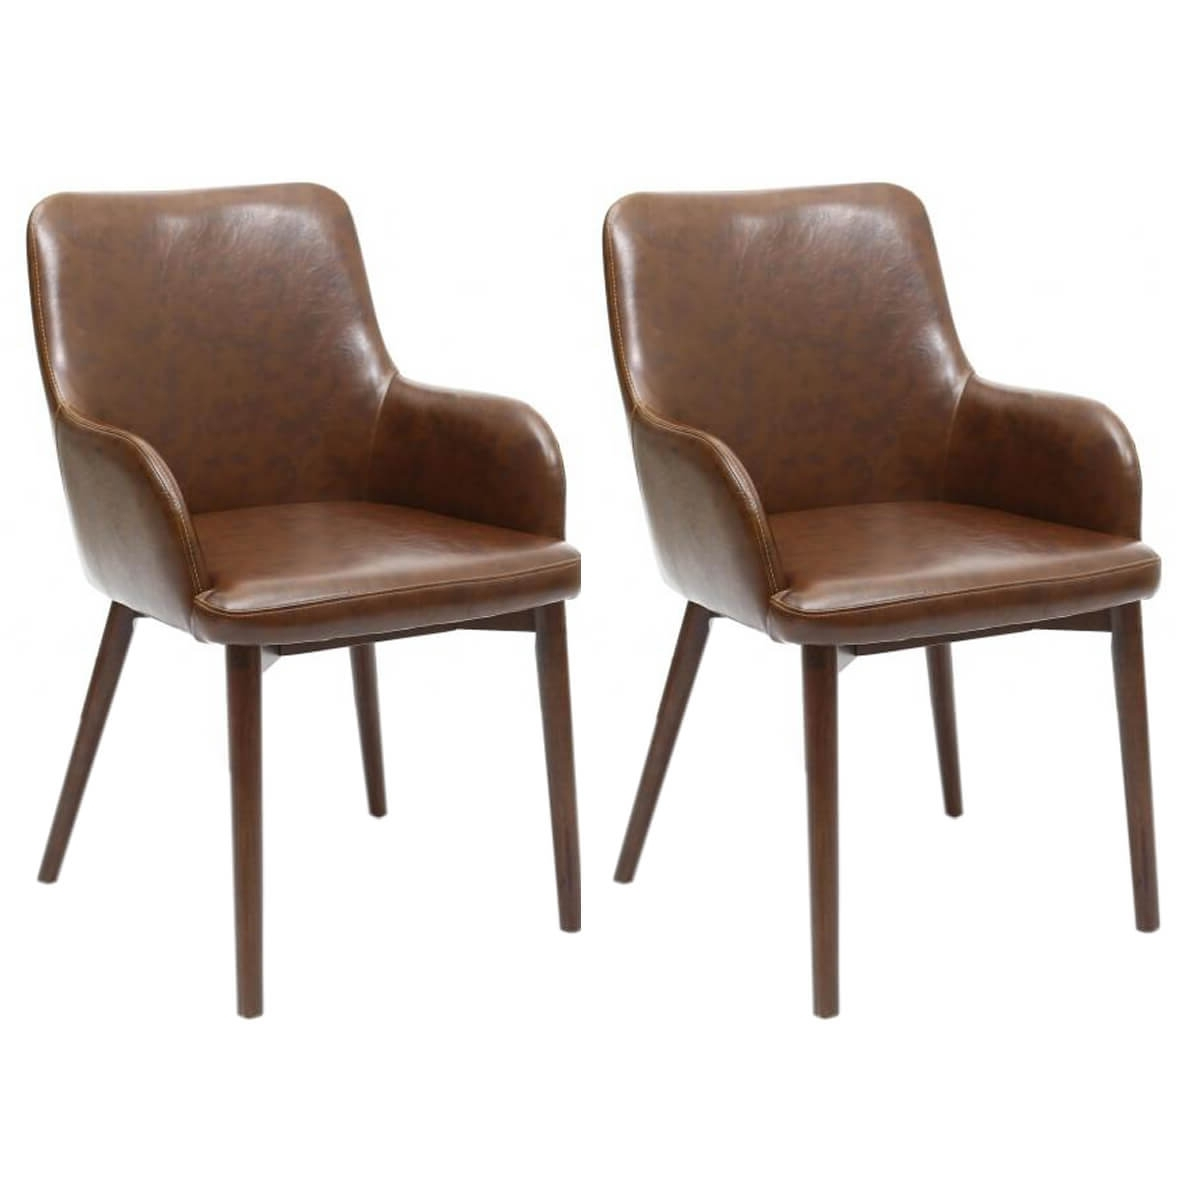 Brown Leather Dining Chairs Regarding Widely Used Sidcup Vintage Brown Leather Dining Chairs (View 6 of 25)